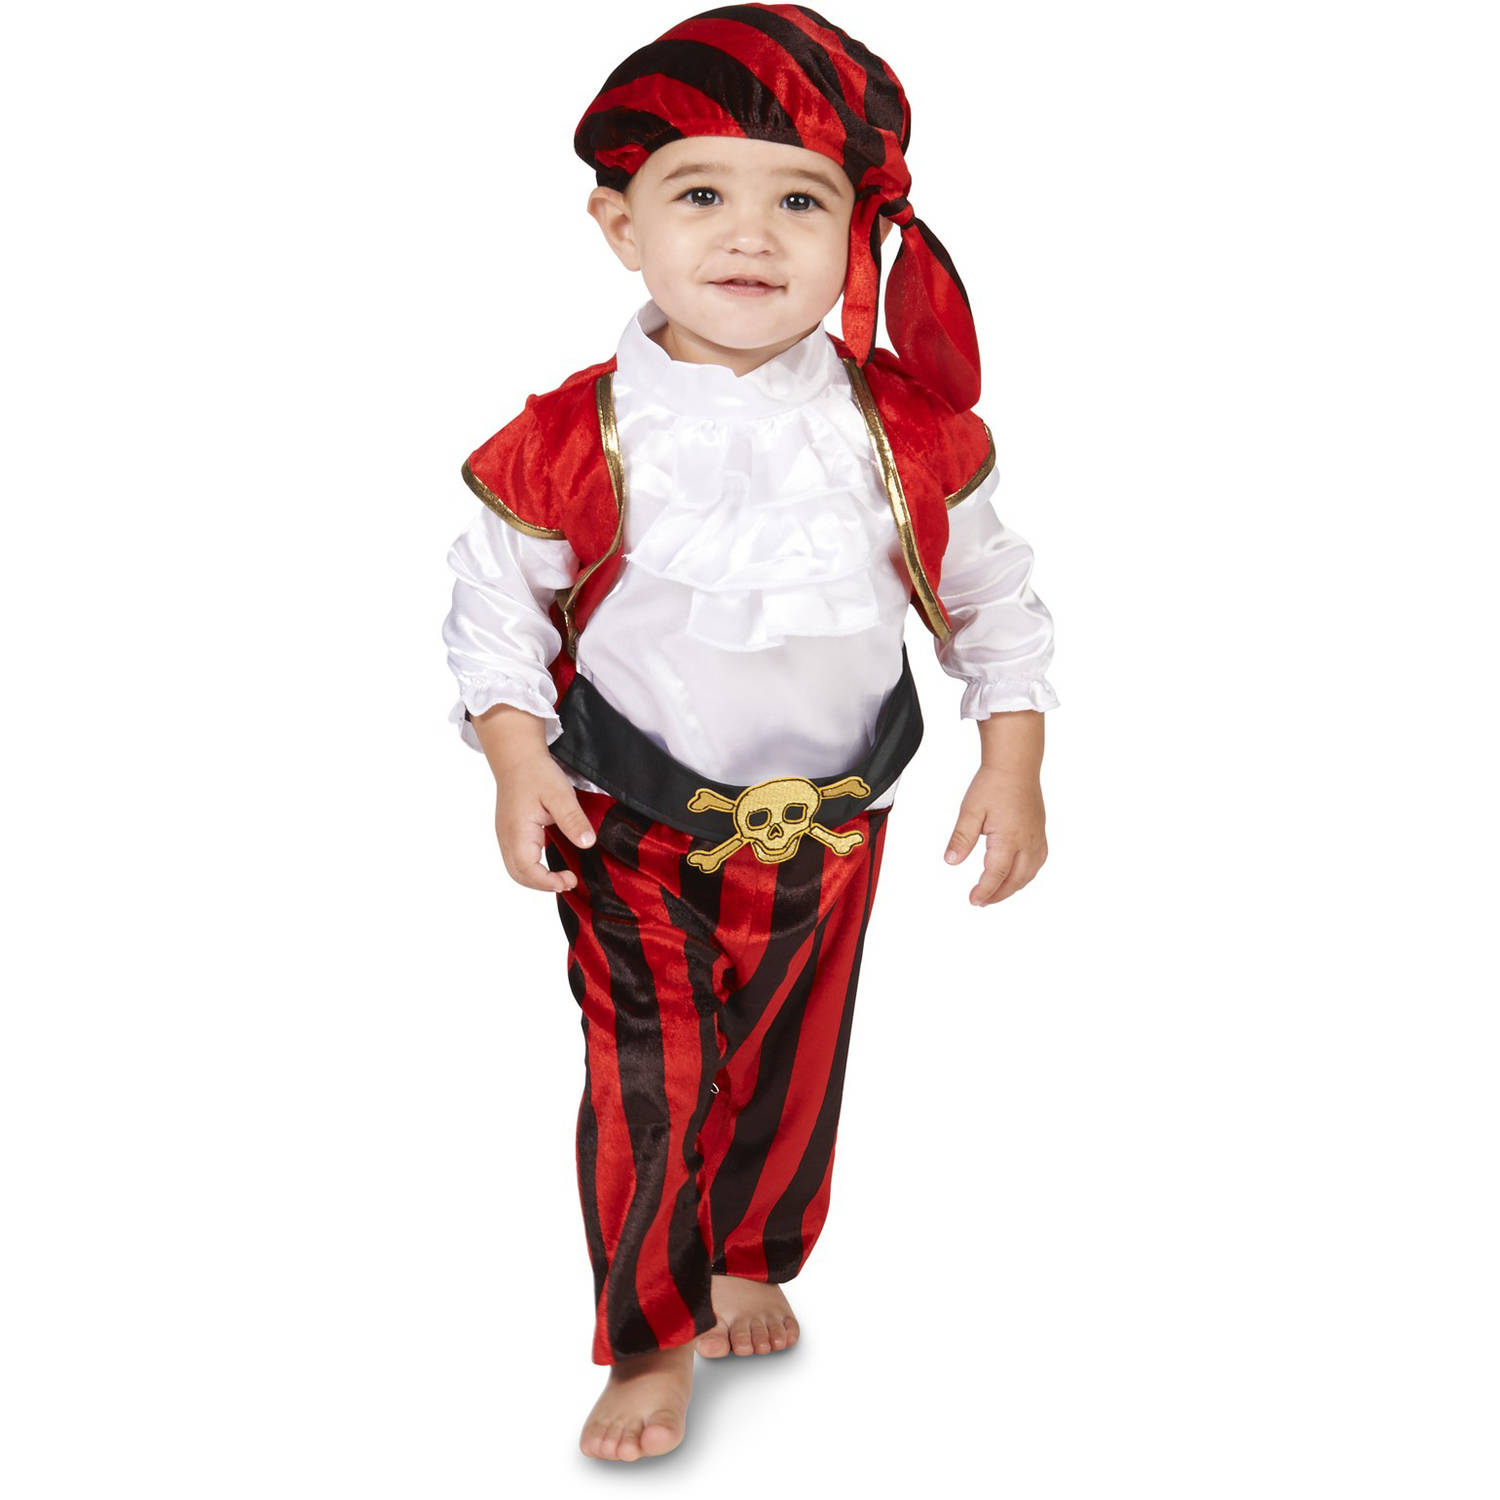 Arrrgh! Arrrgh! Pirate Infant Halloween Costume, Size 12-18 Months